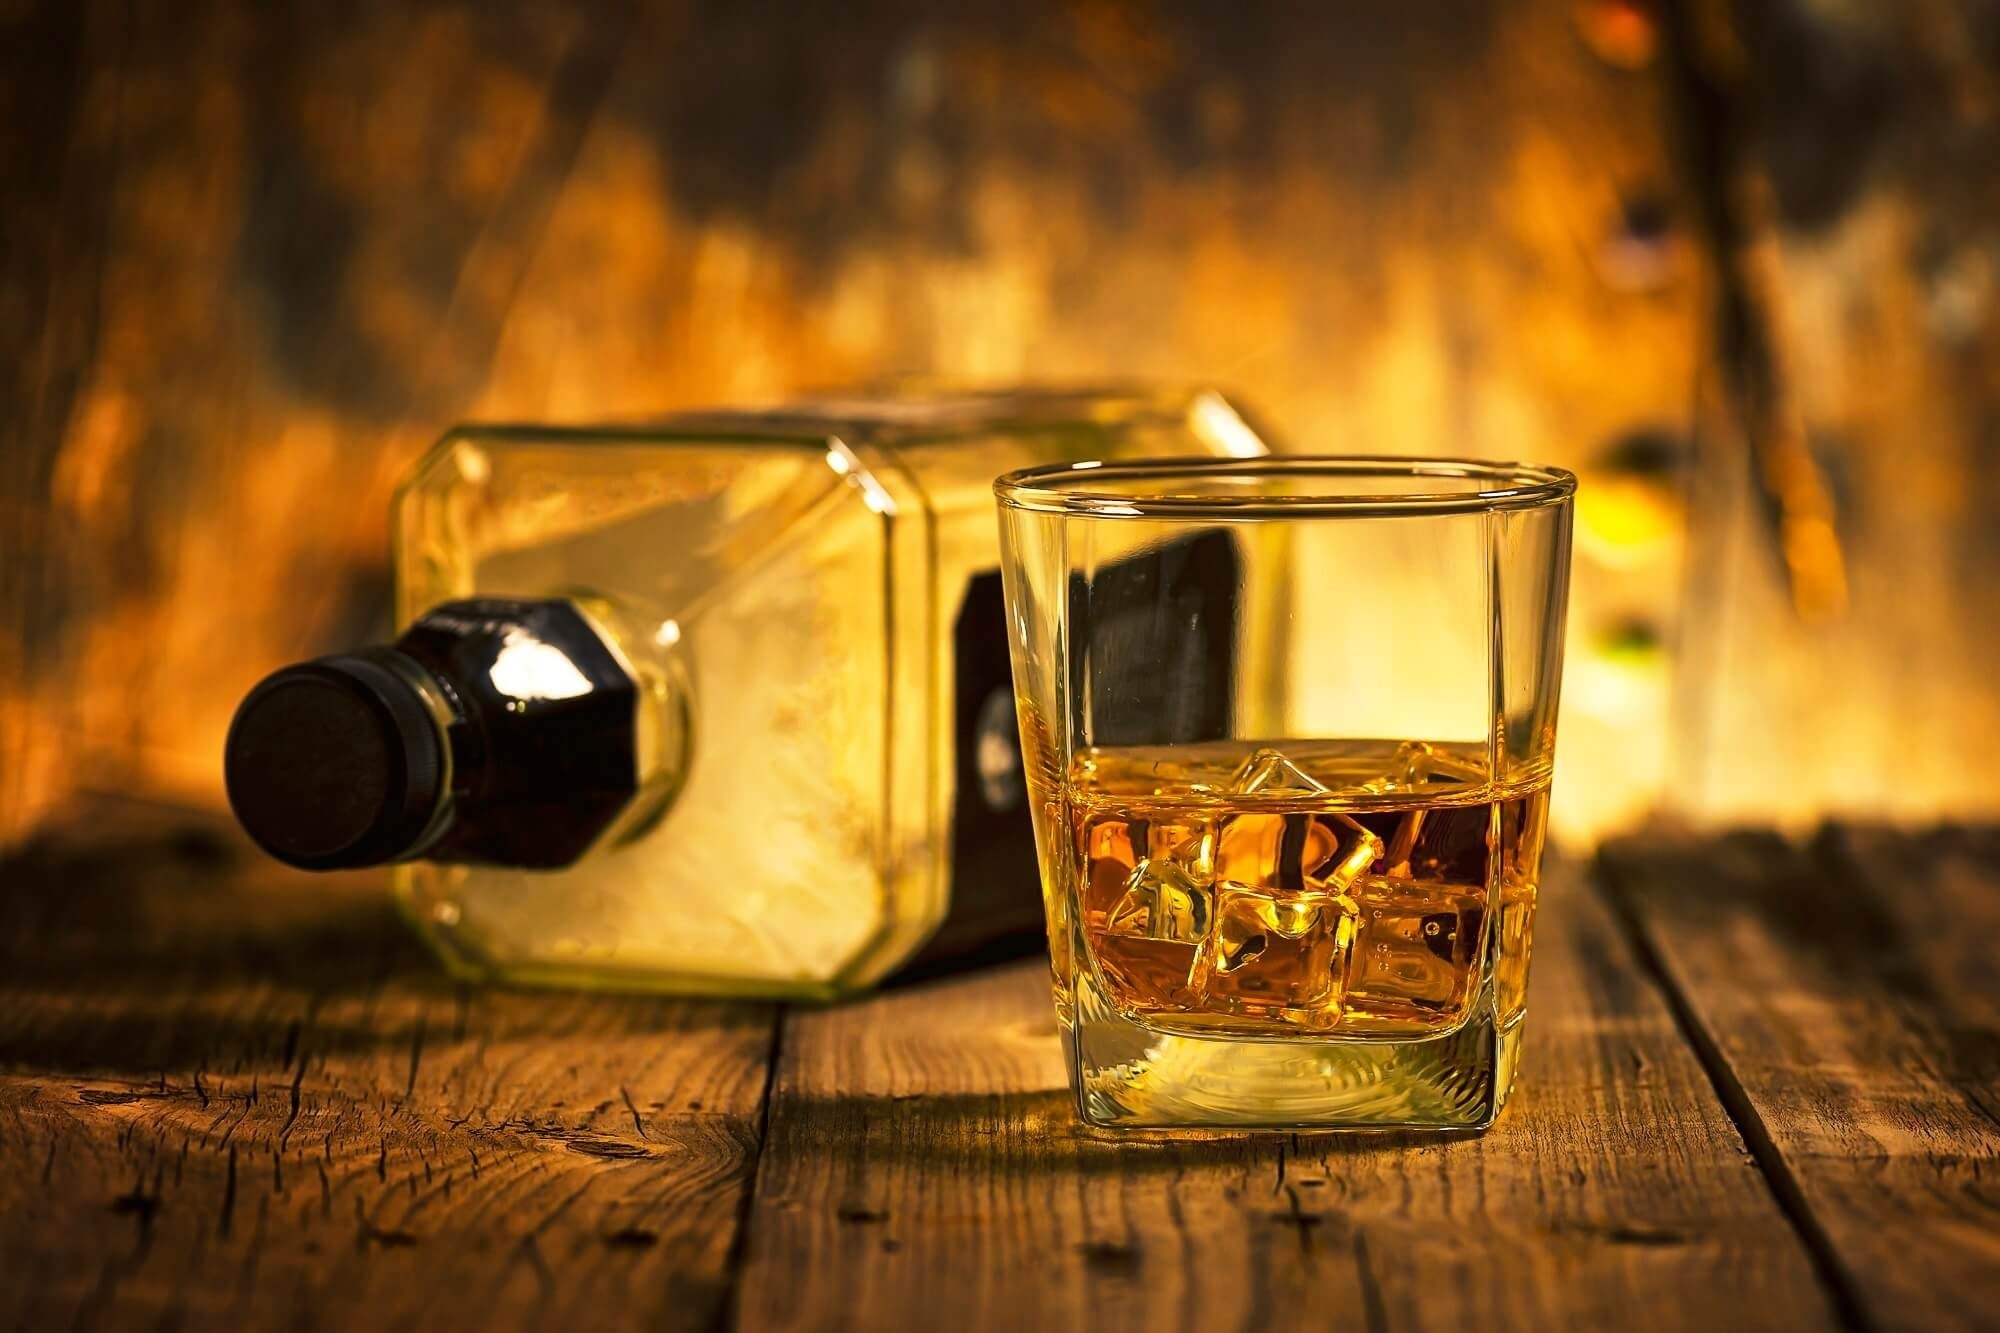 USPSTF Recommends Screening Adults for Unhealthy Alcohol Use